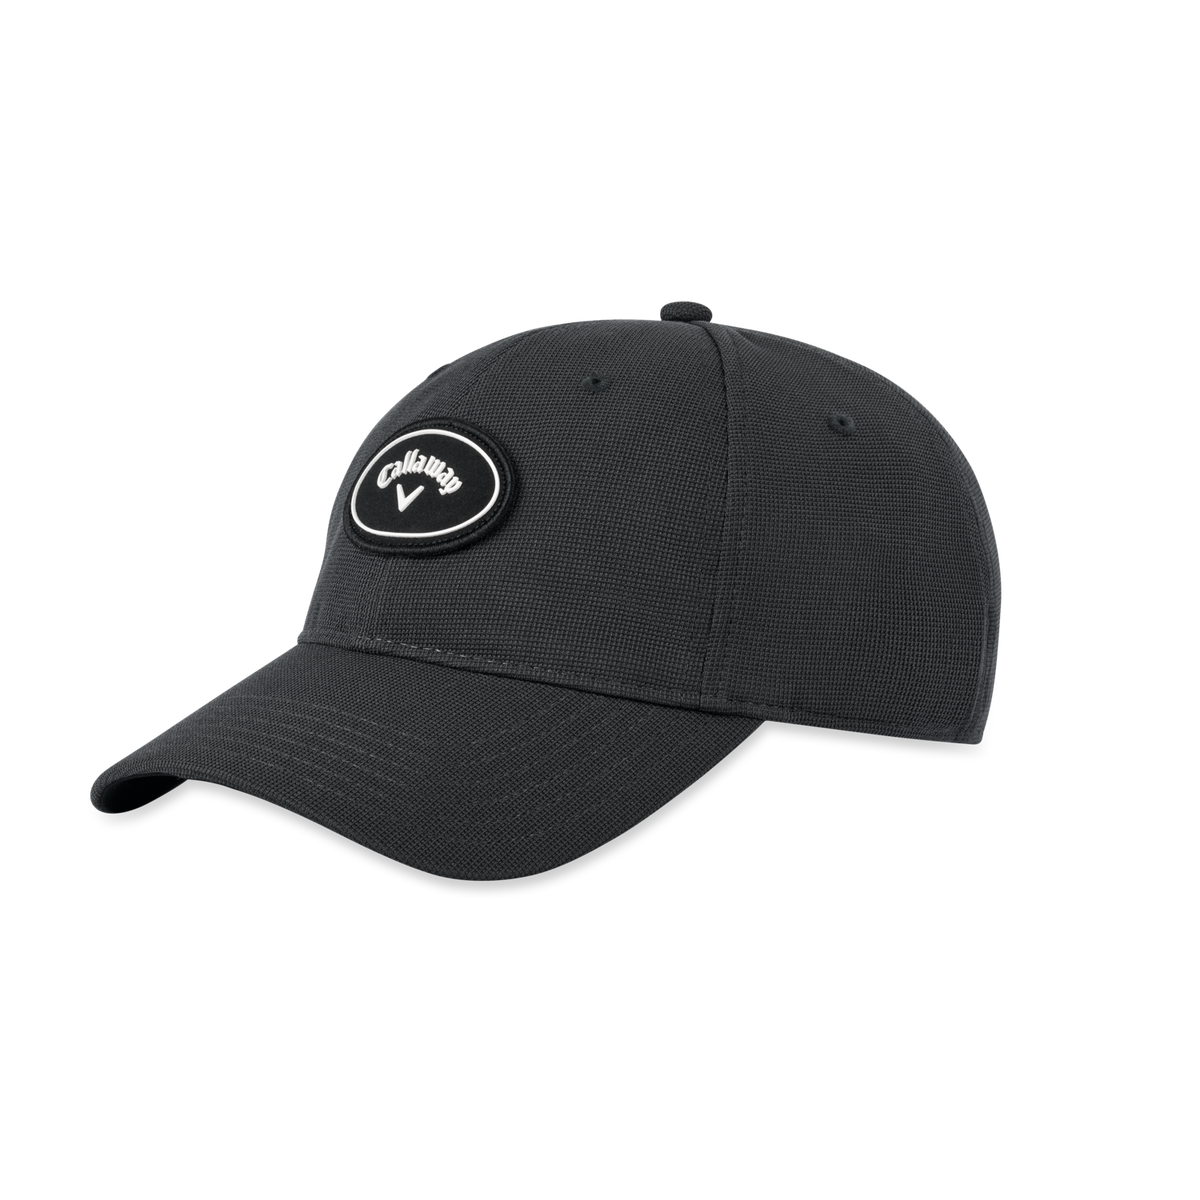 e4ada8857e1 Callaway Stretch Fitted Hat